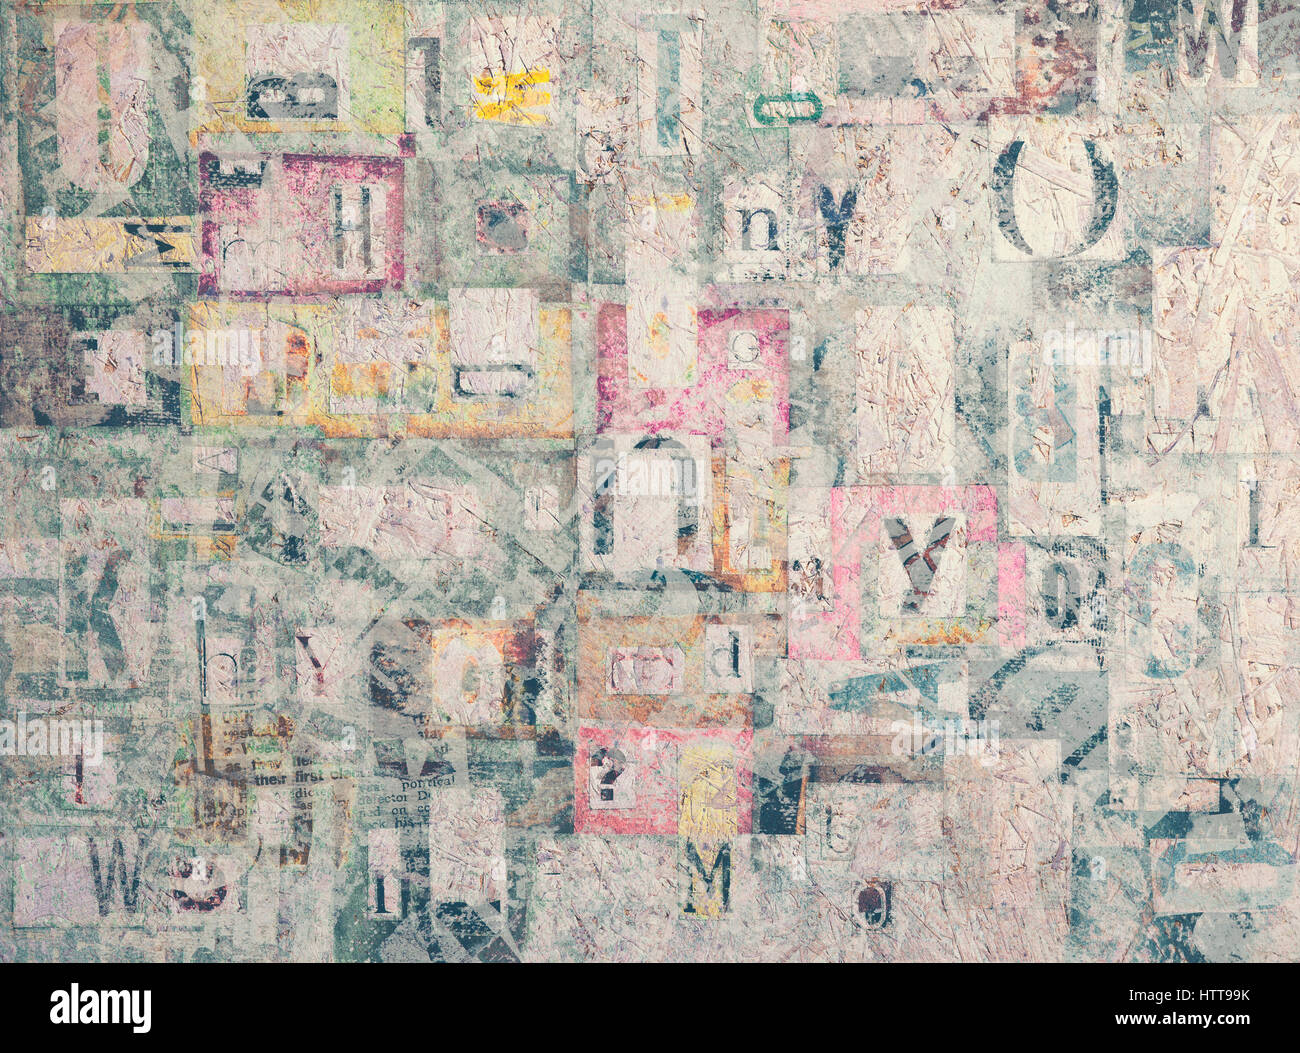 Abstract Art Mixed Media Grunge Stock Photo: Grunge Abstract Newspaper Background Design Stock Photos